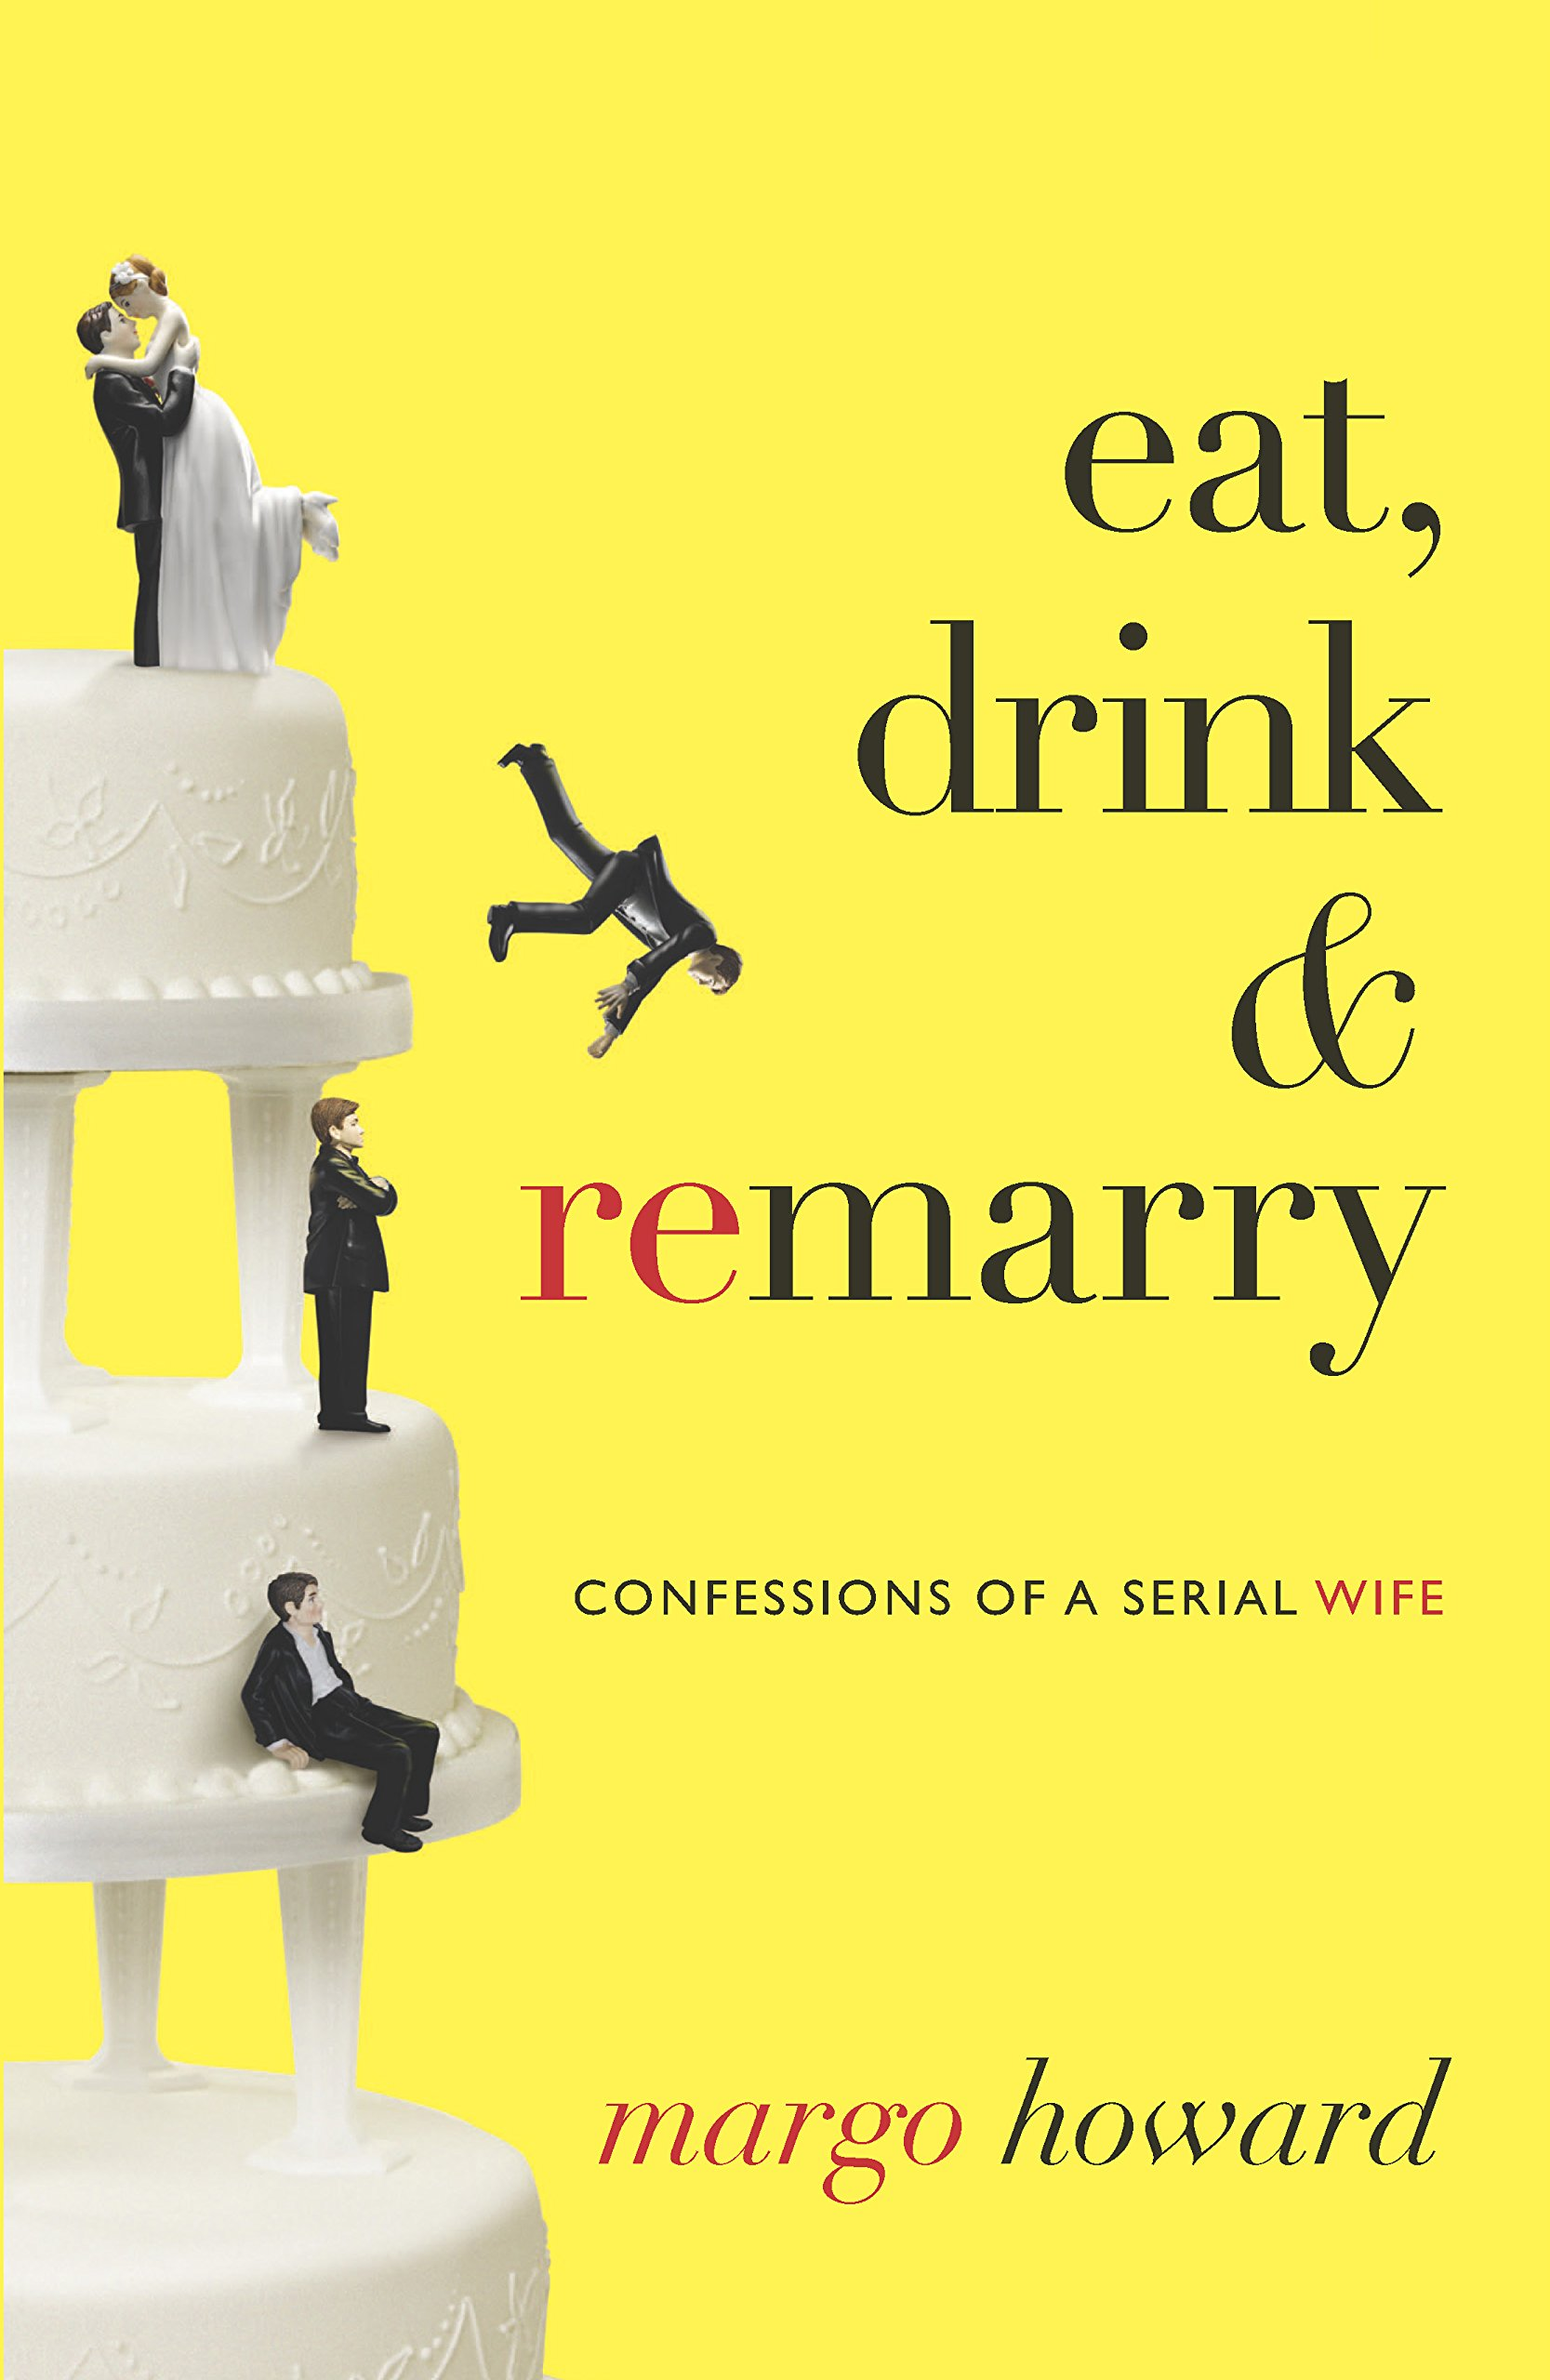 Eat drink and remarry